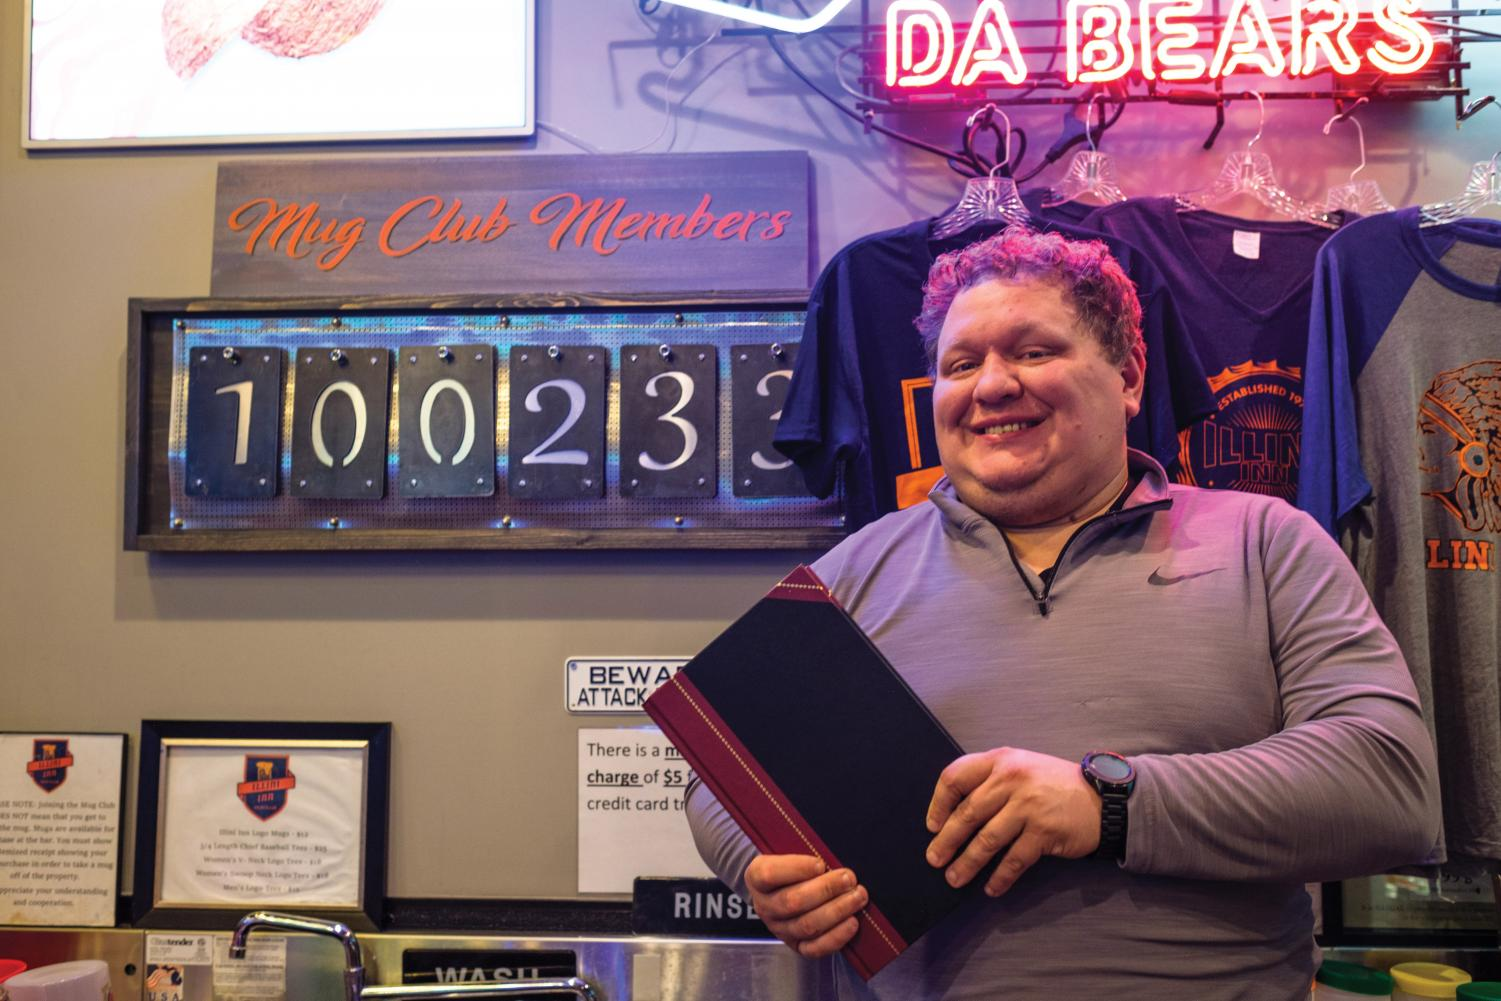 Josh Pearson, manager of Illini Inn, poses in front of the mug club sign on Tuesday